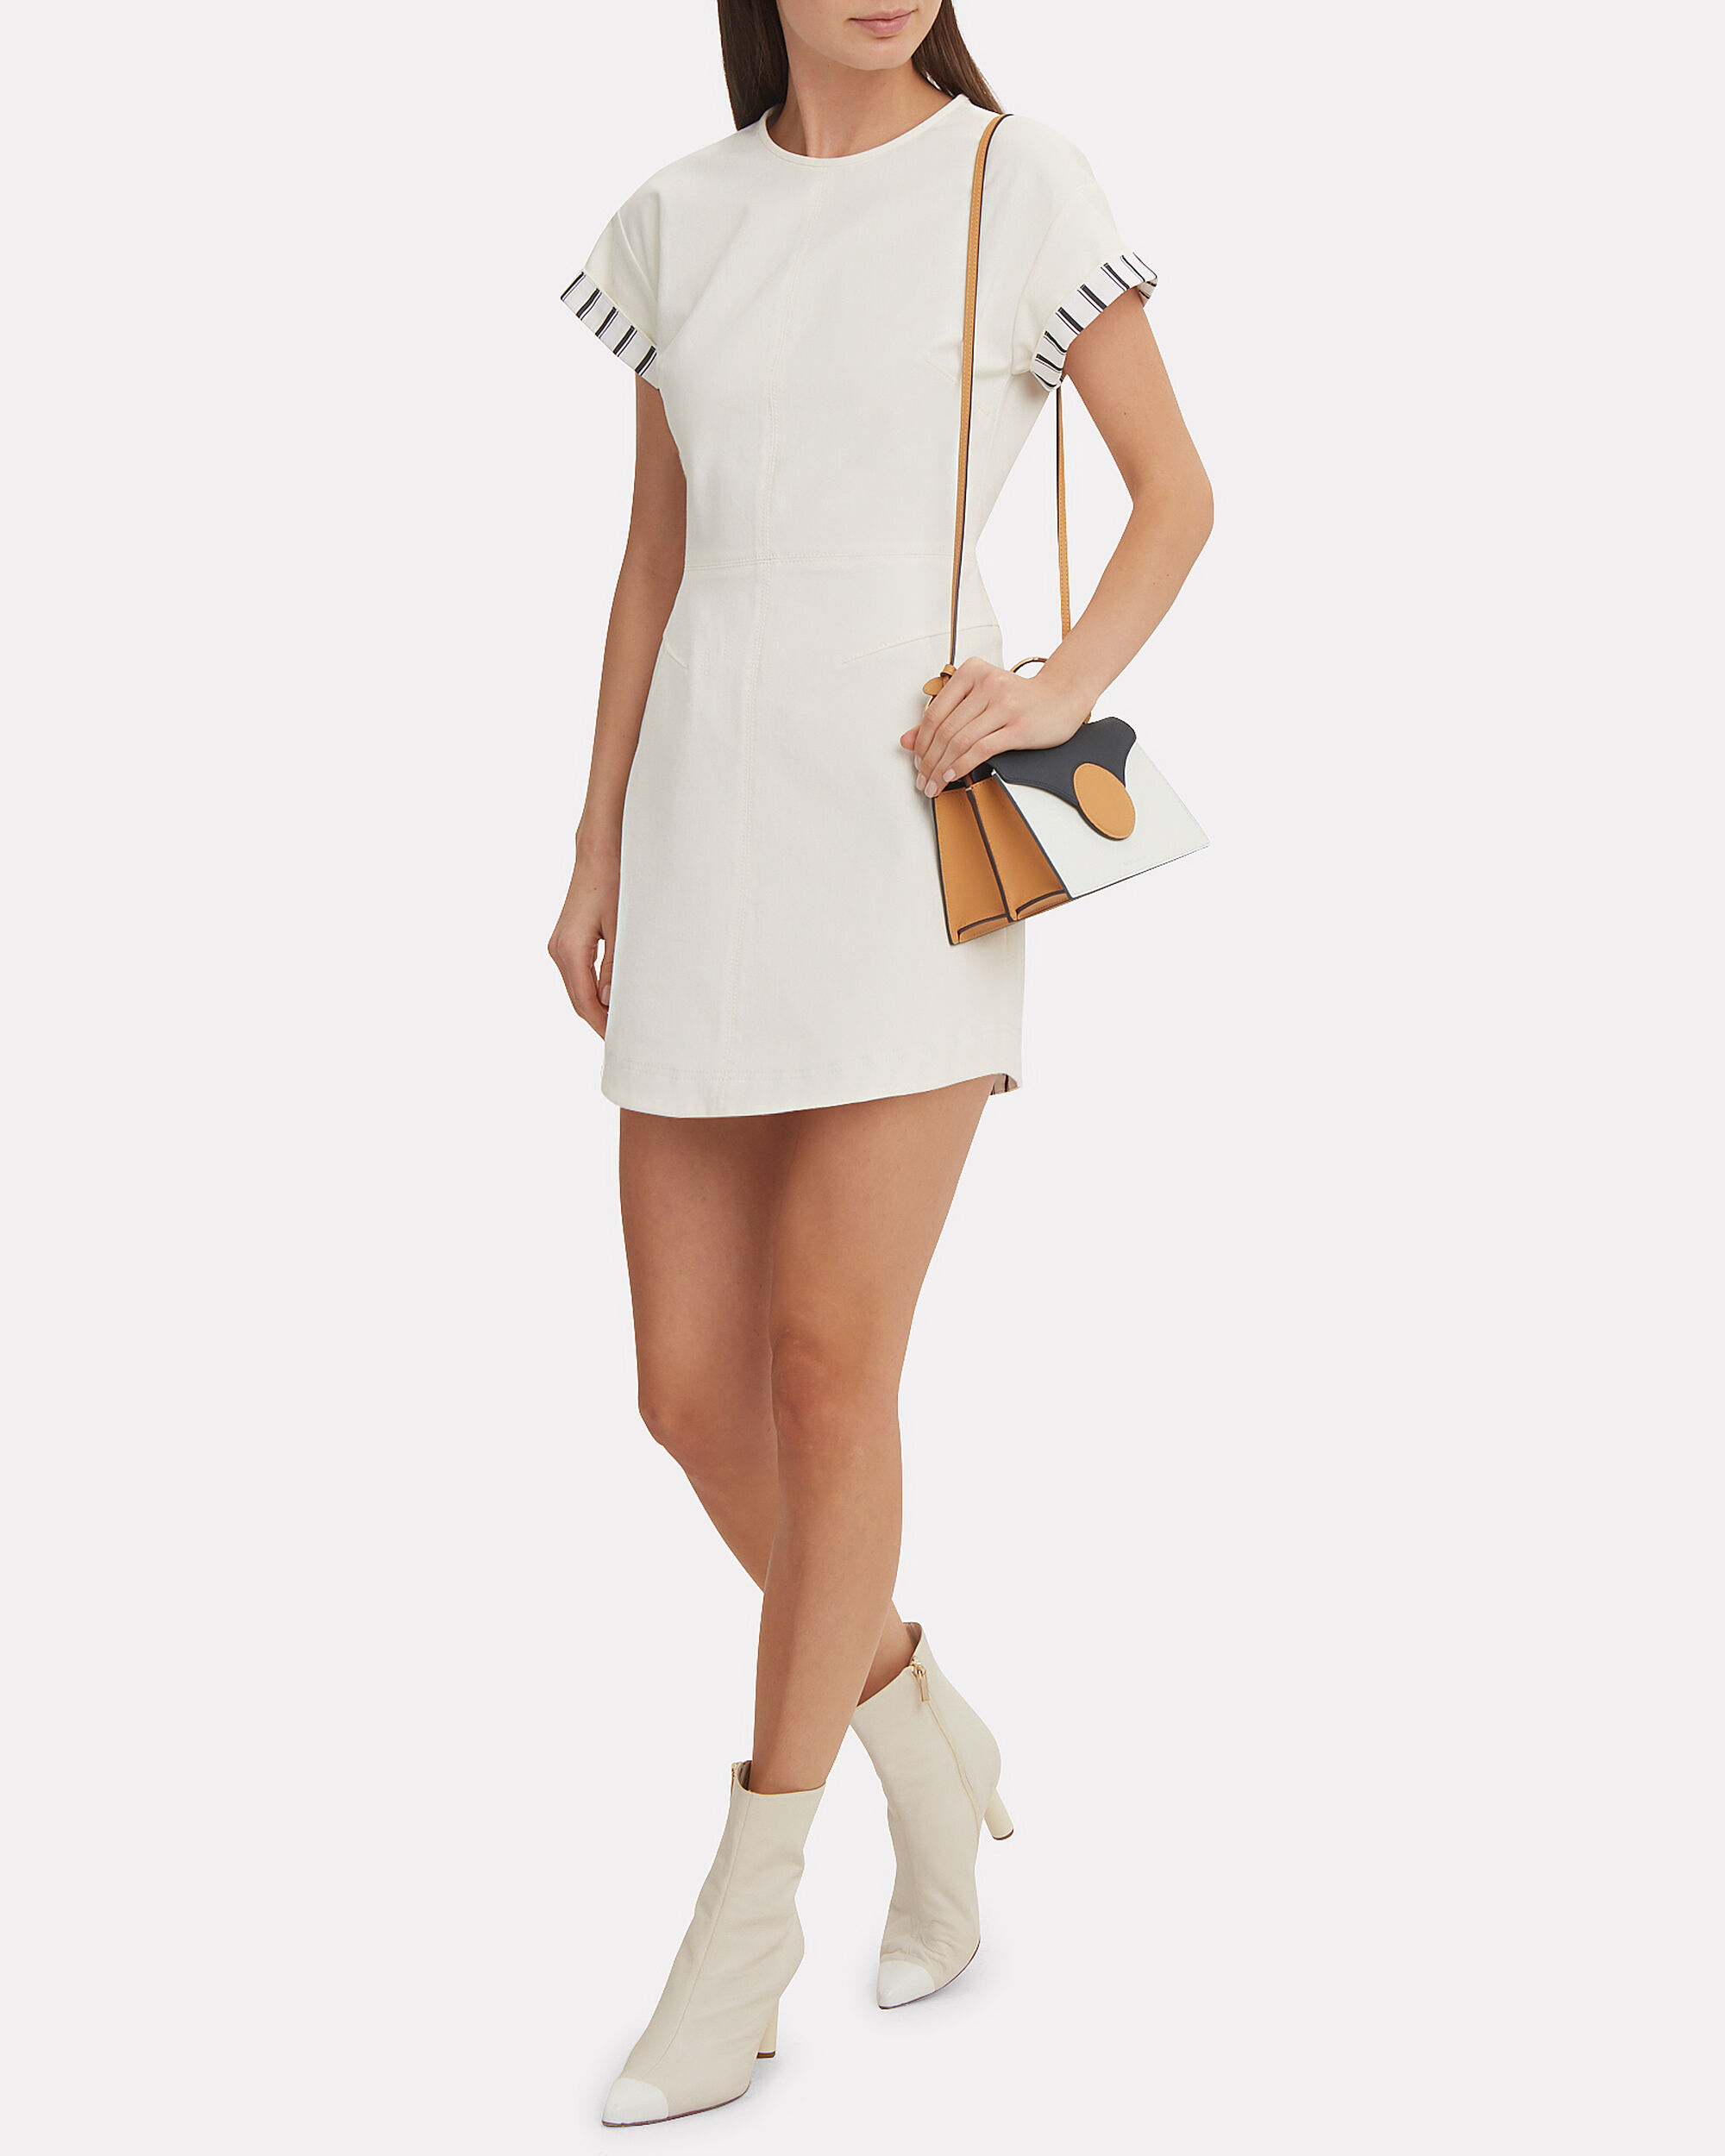 Striped Sleeve Ivory Mini Dress, IVORY/STRIPE, hi-res